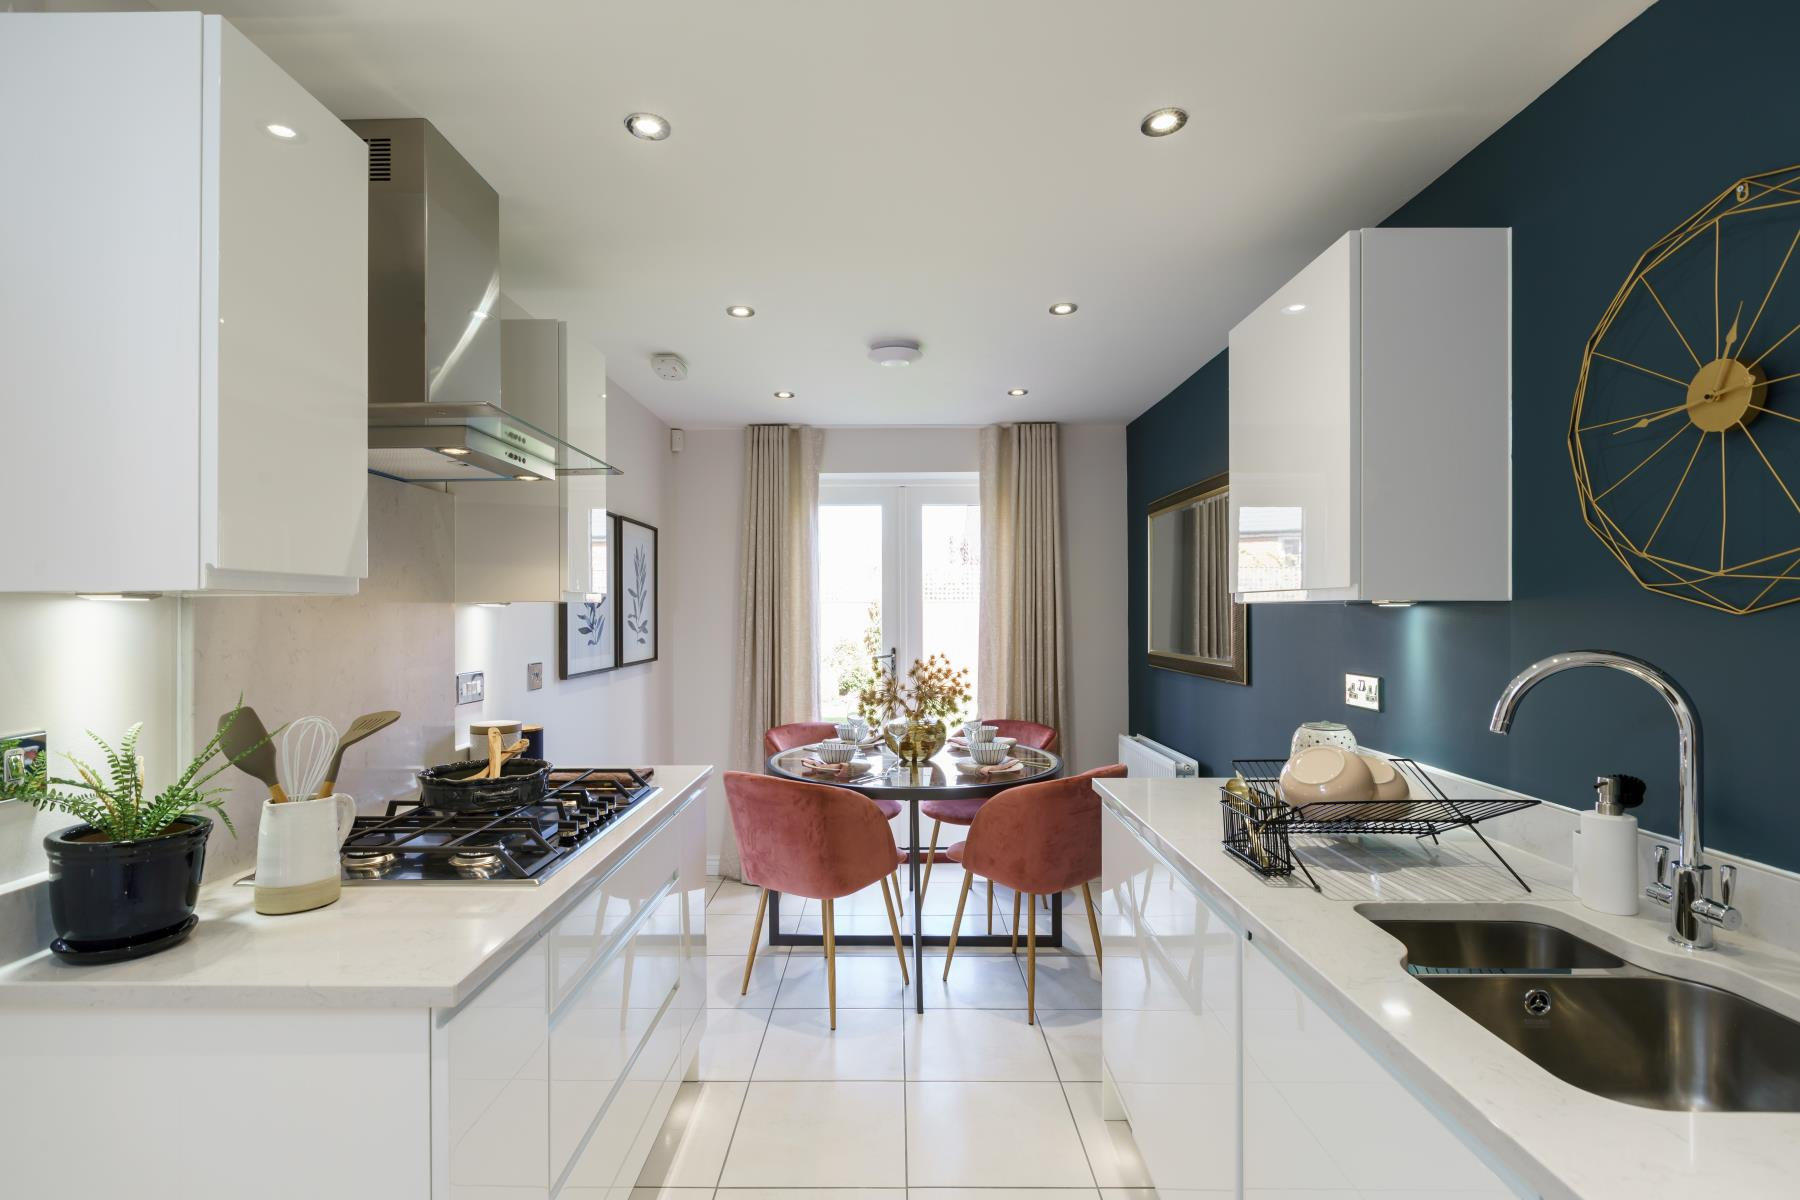 Kitchen Trends In 2019 Taylor Wimpey